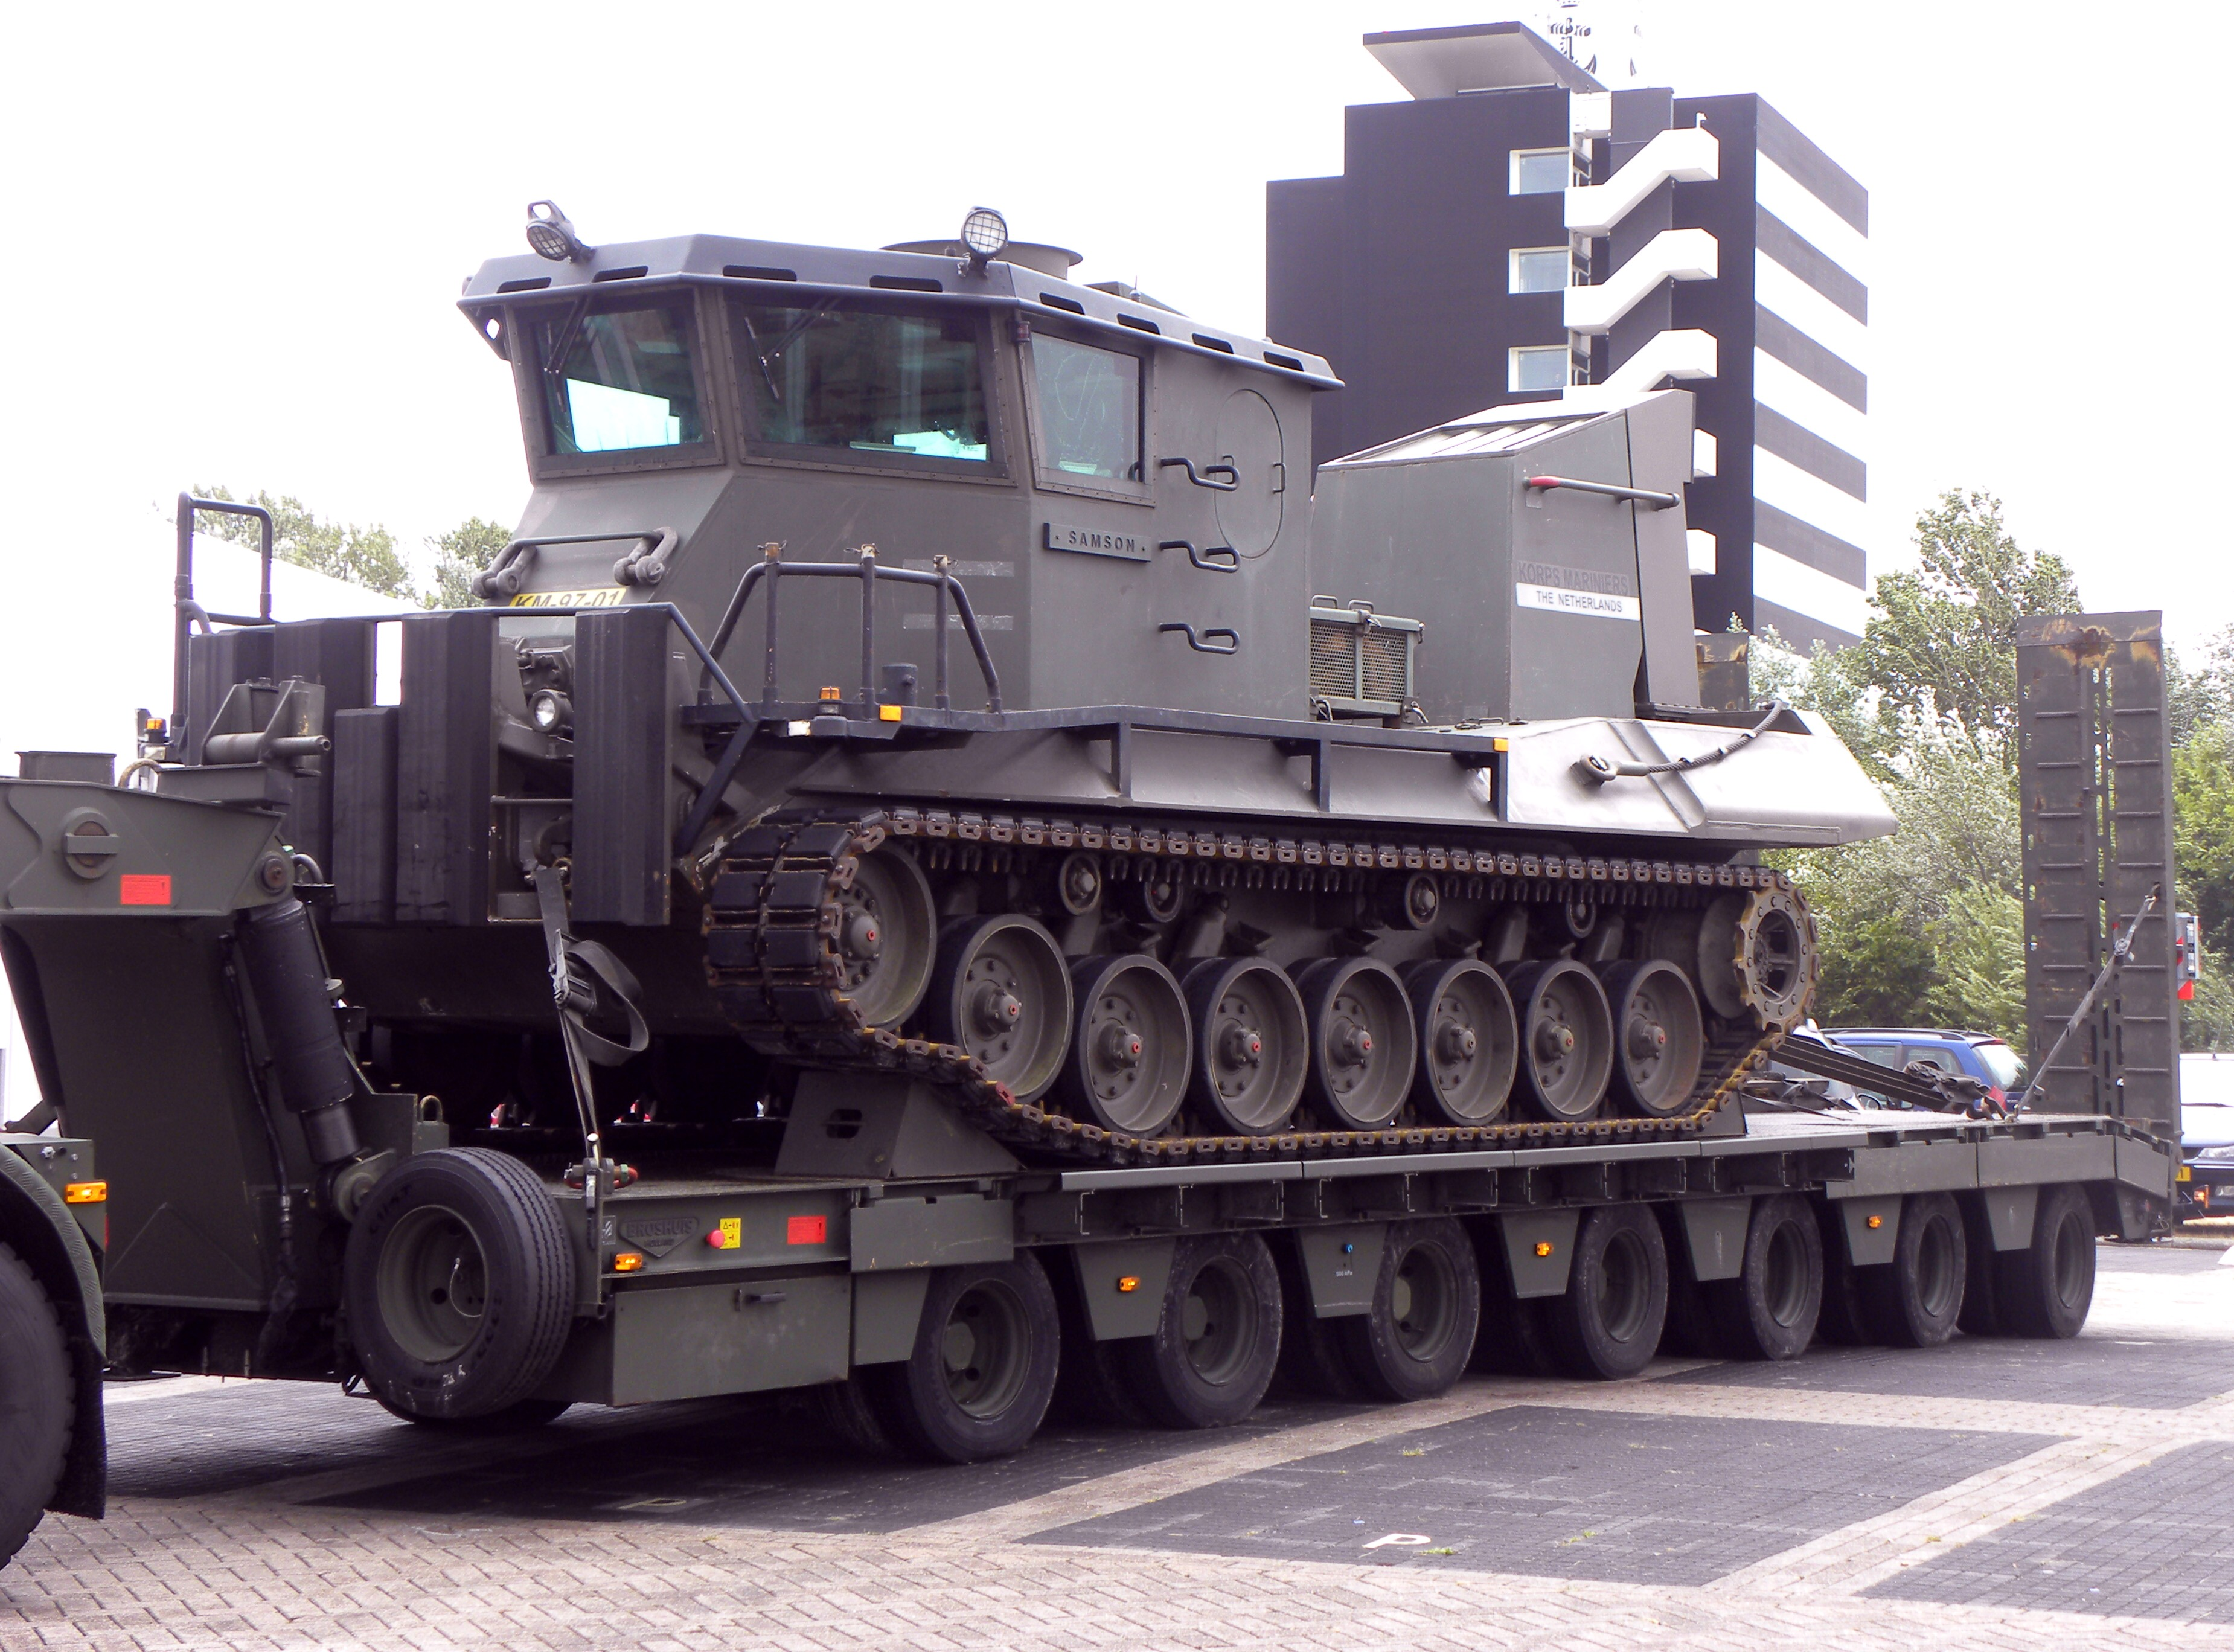 493 best MILITARY VEHICLES images on Pinterest | Army vehicles ...